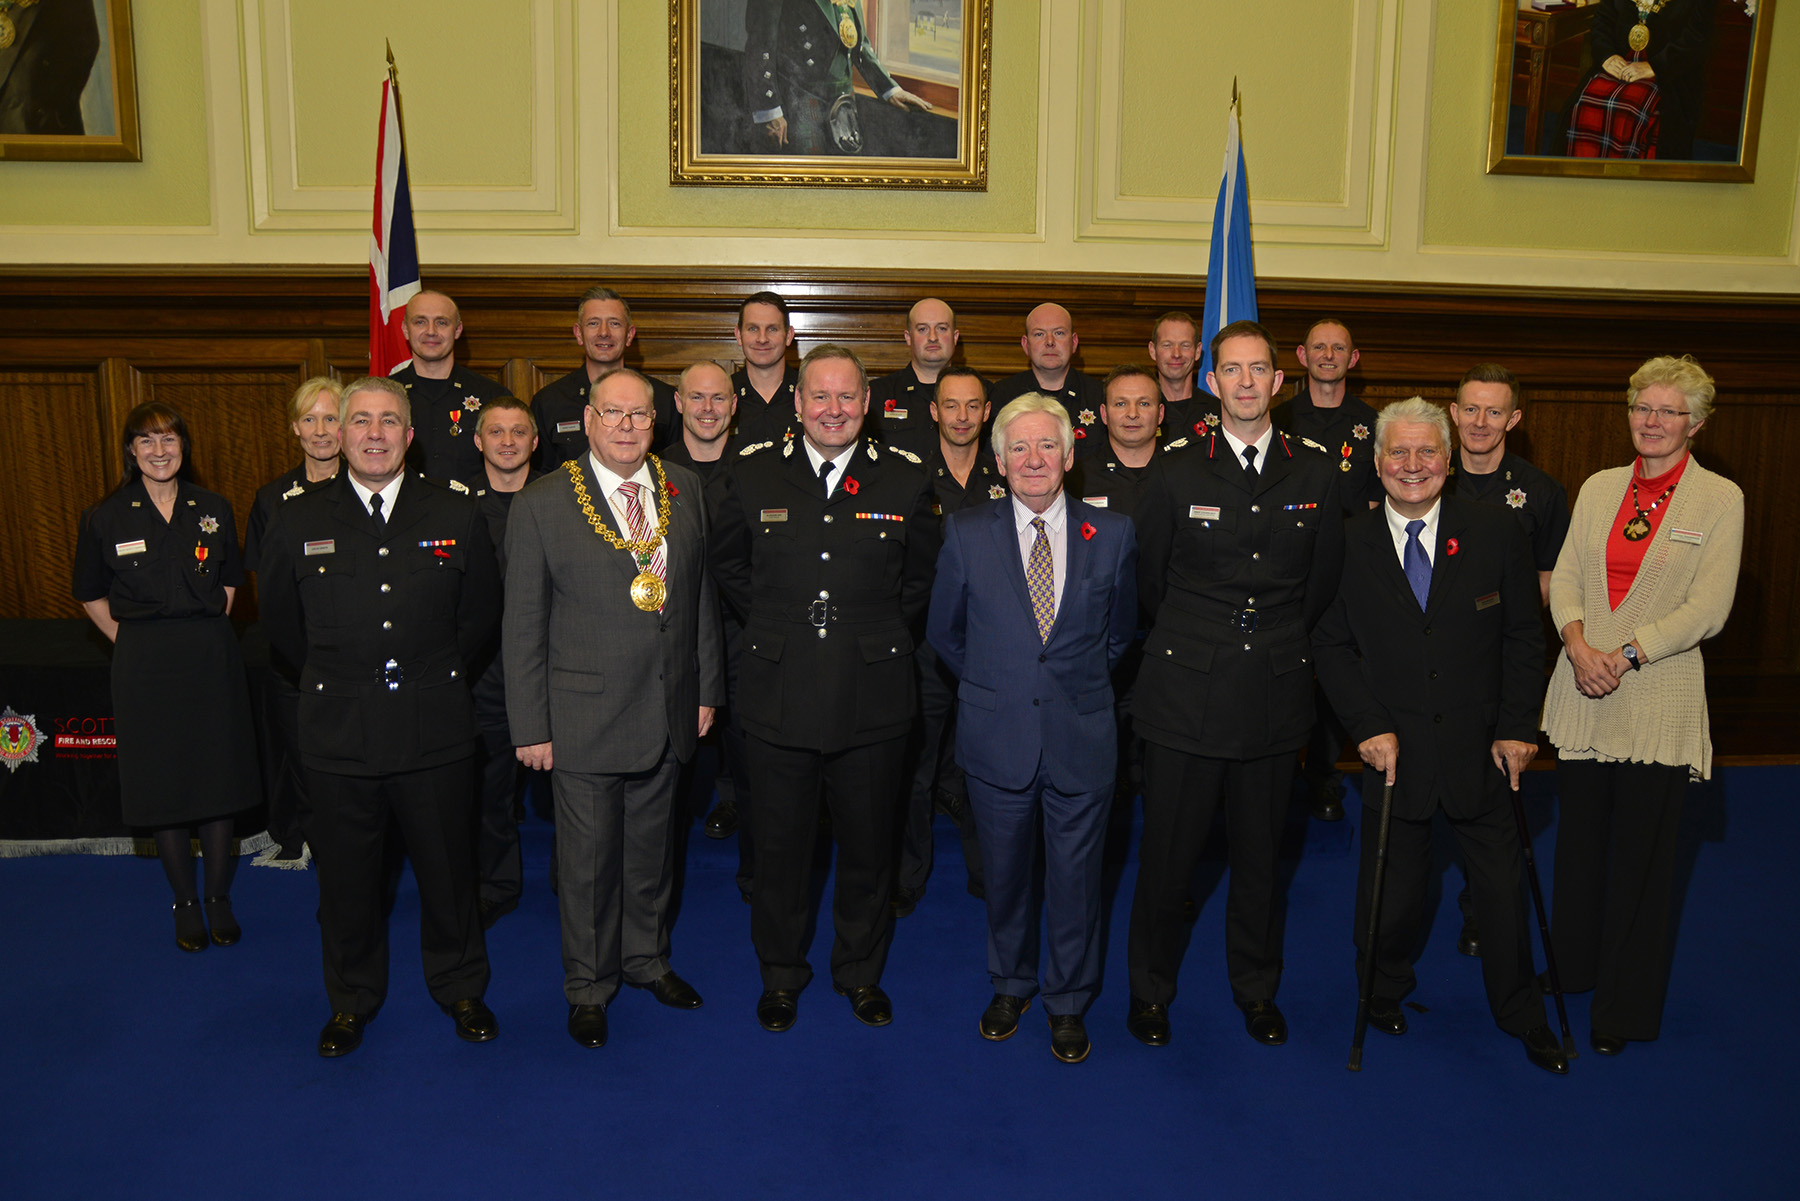 Firefighters honoured at Dundee City Chambers